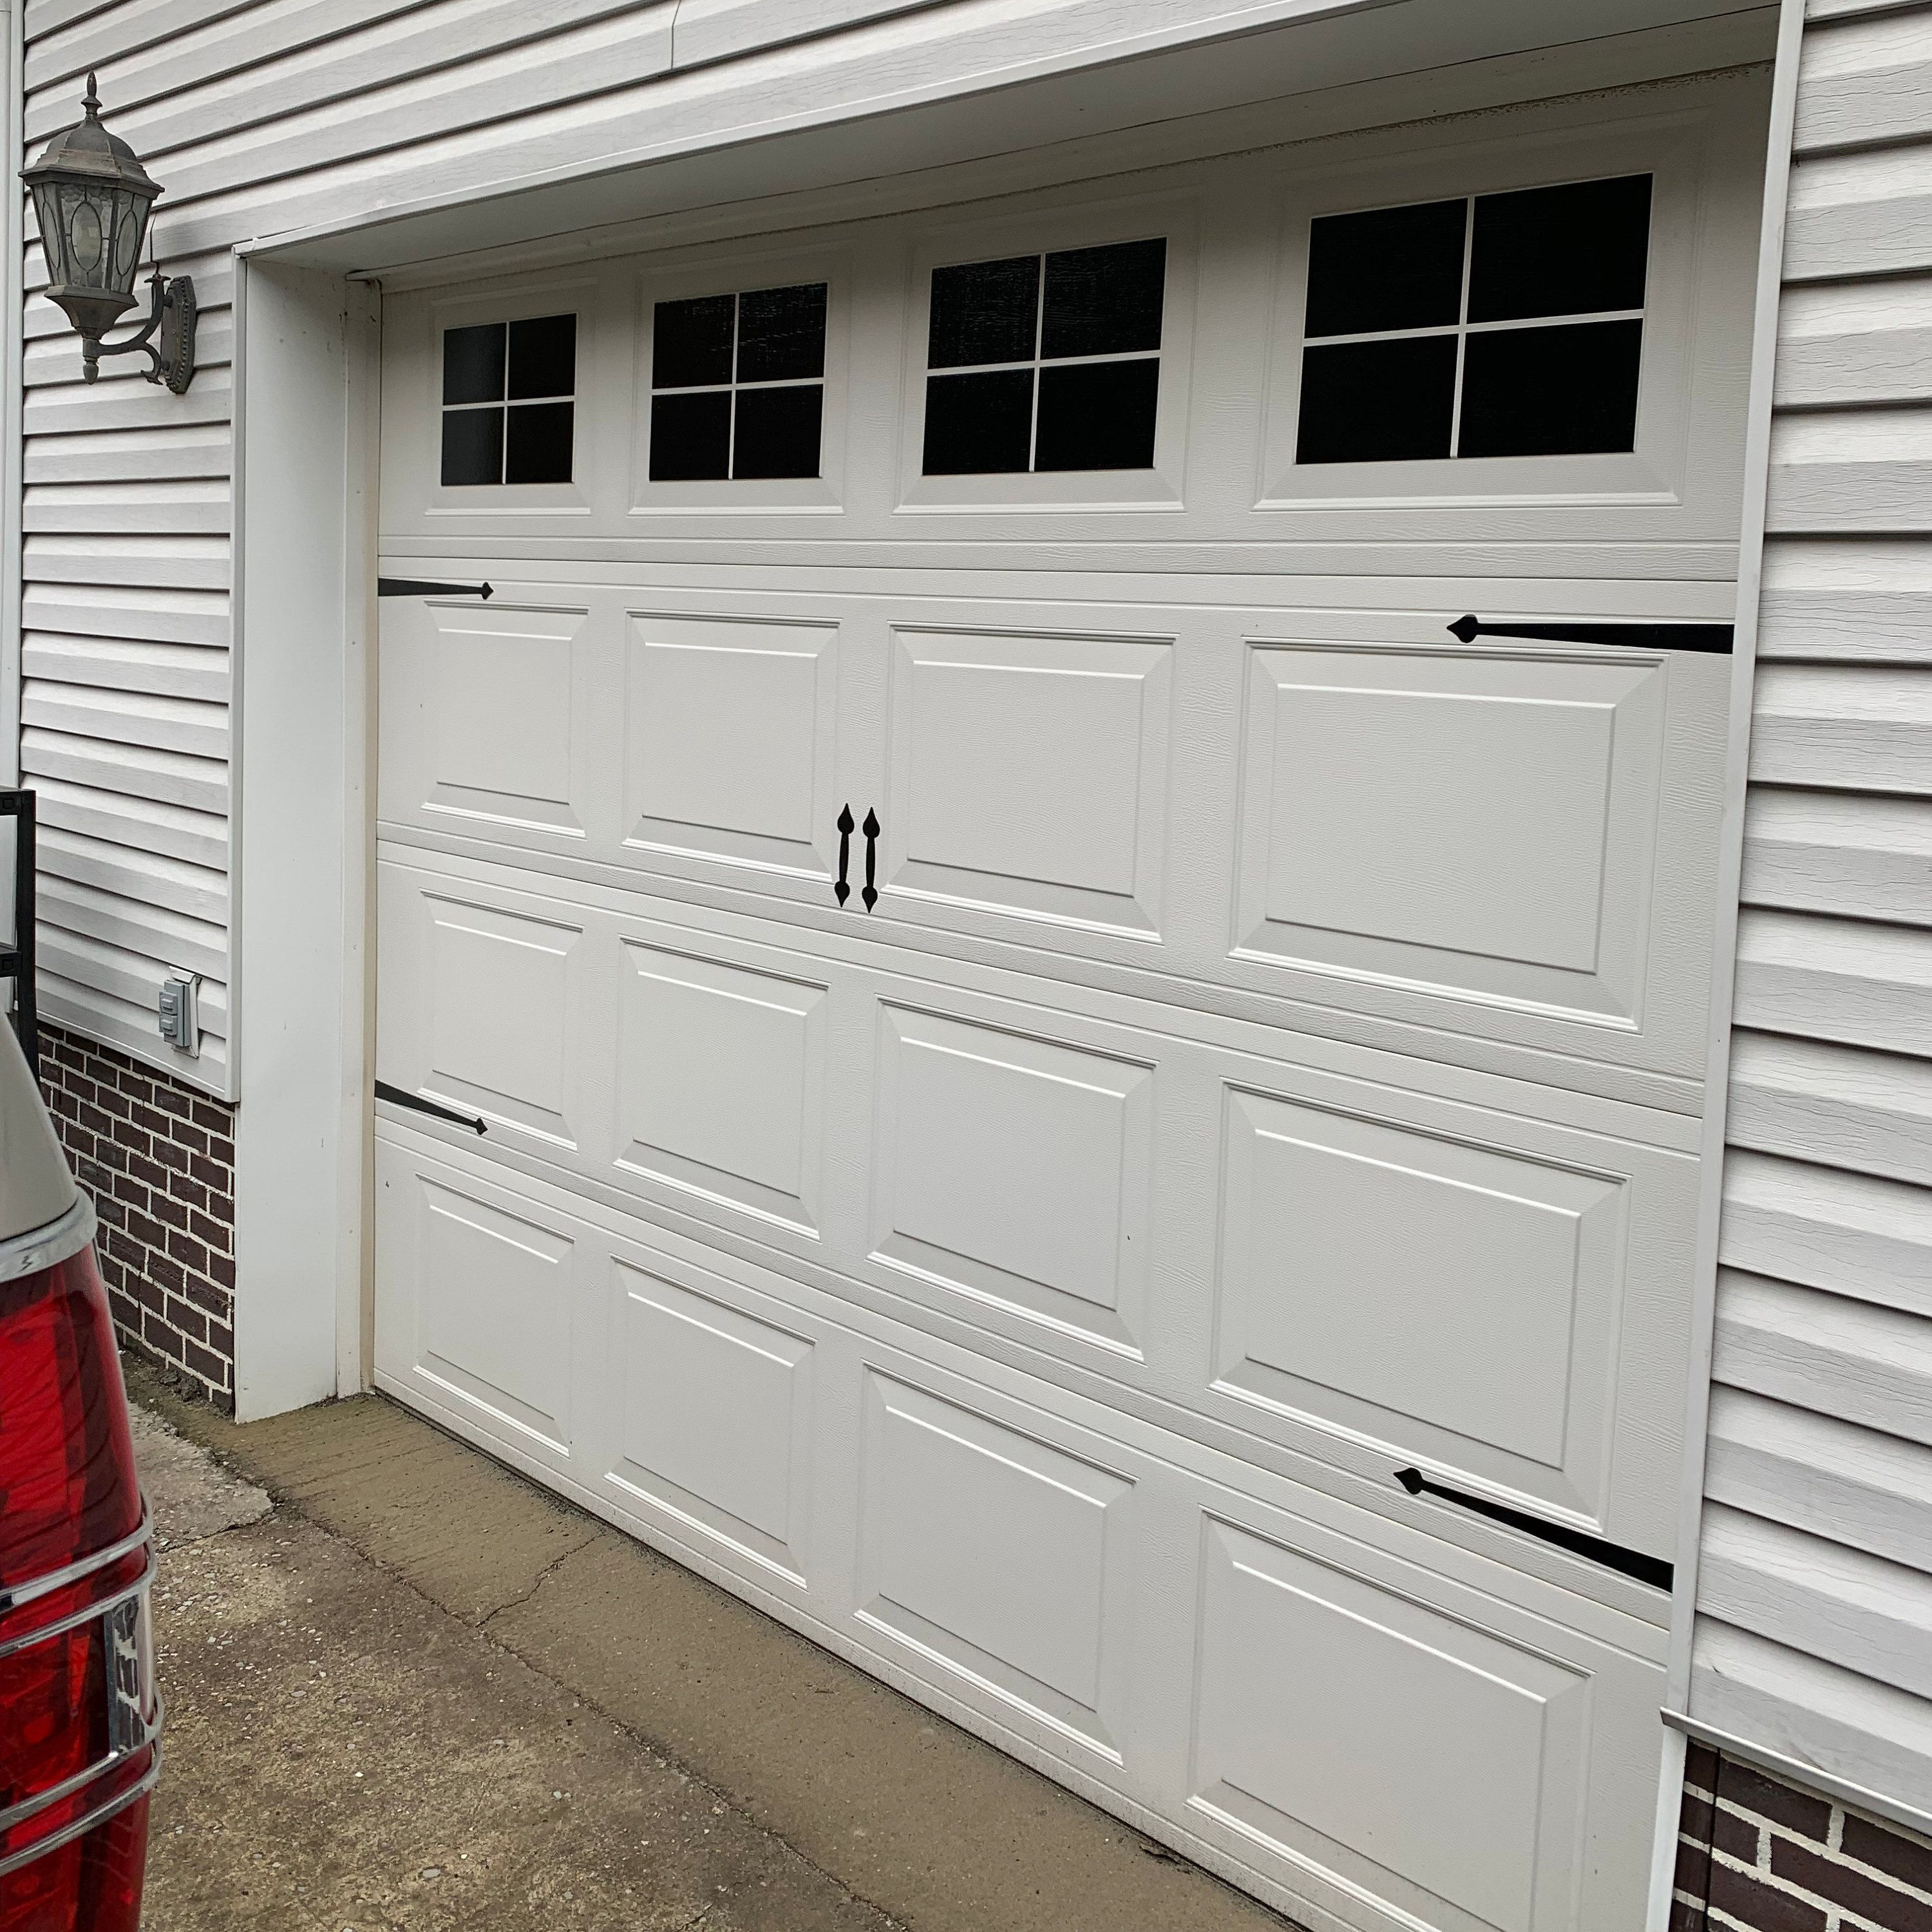 Vinyl Faux Carriage Garage Door Etsy Garage Doors Carriage Garage Doors Garage Door Design